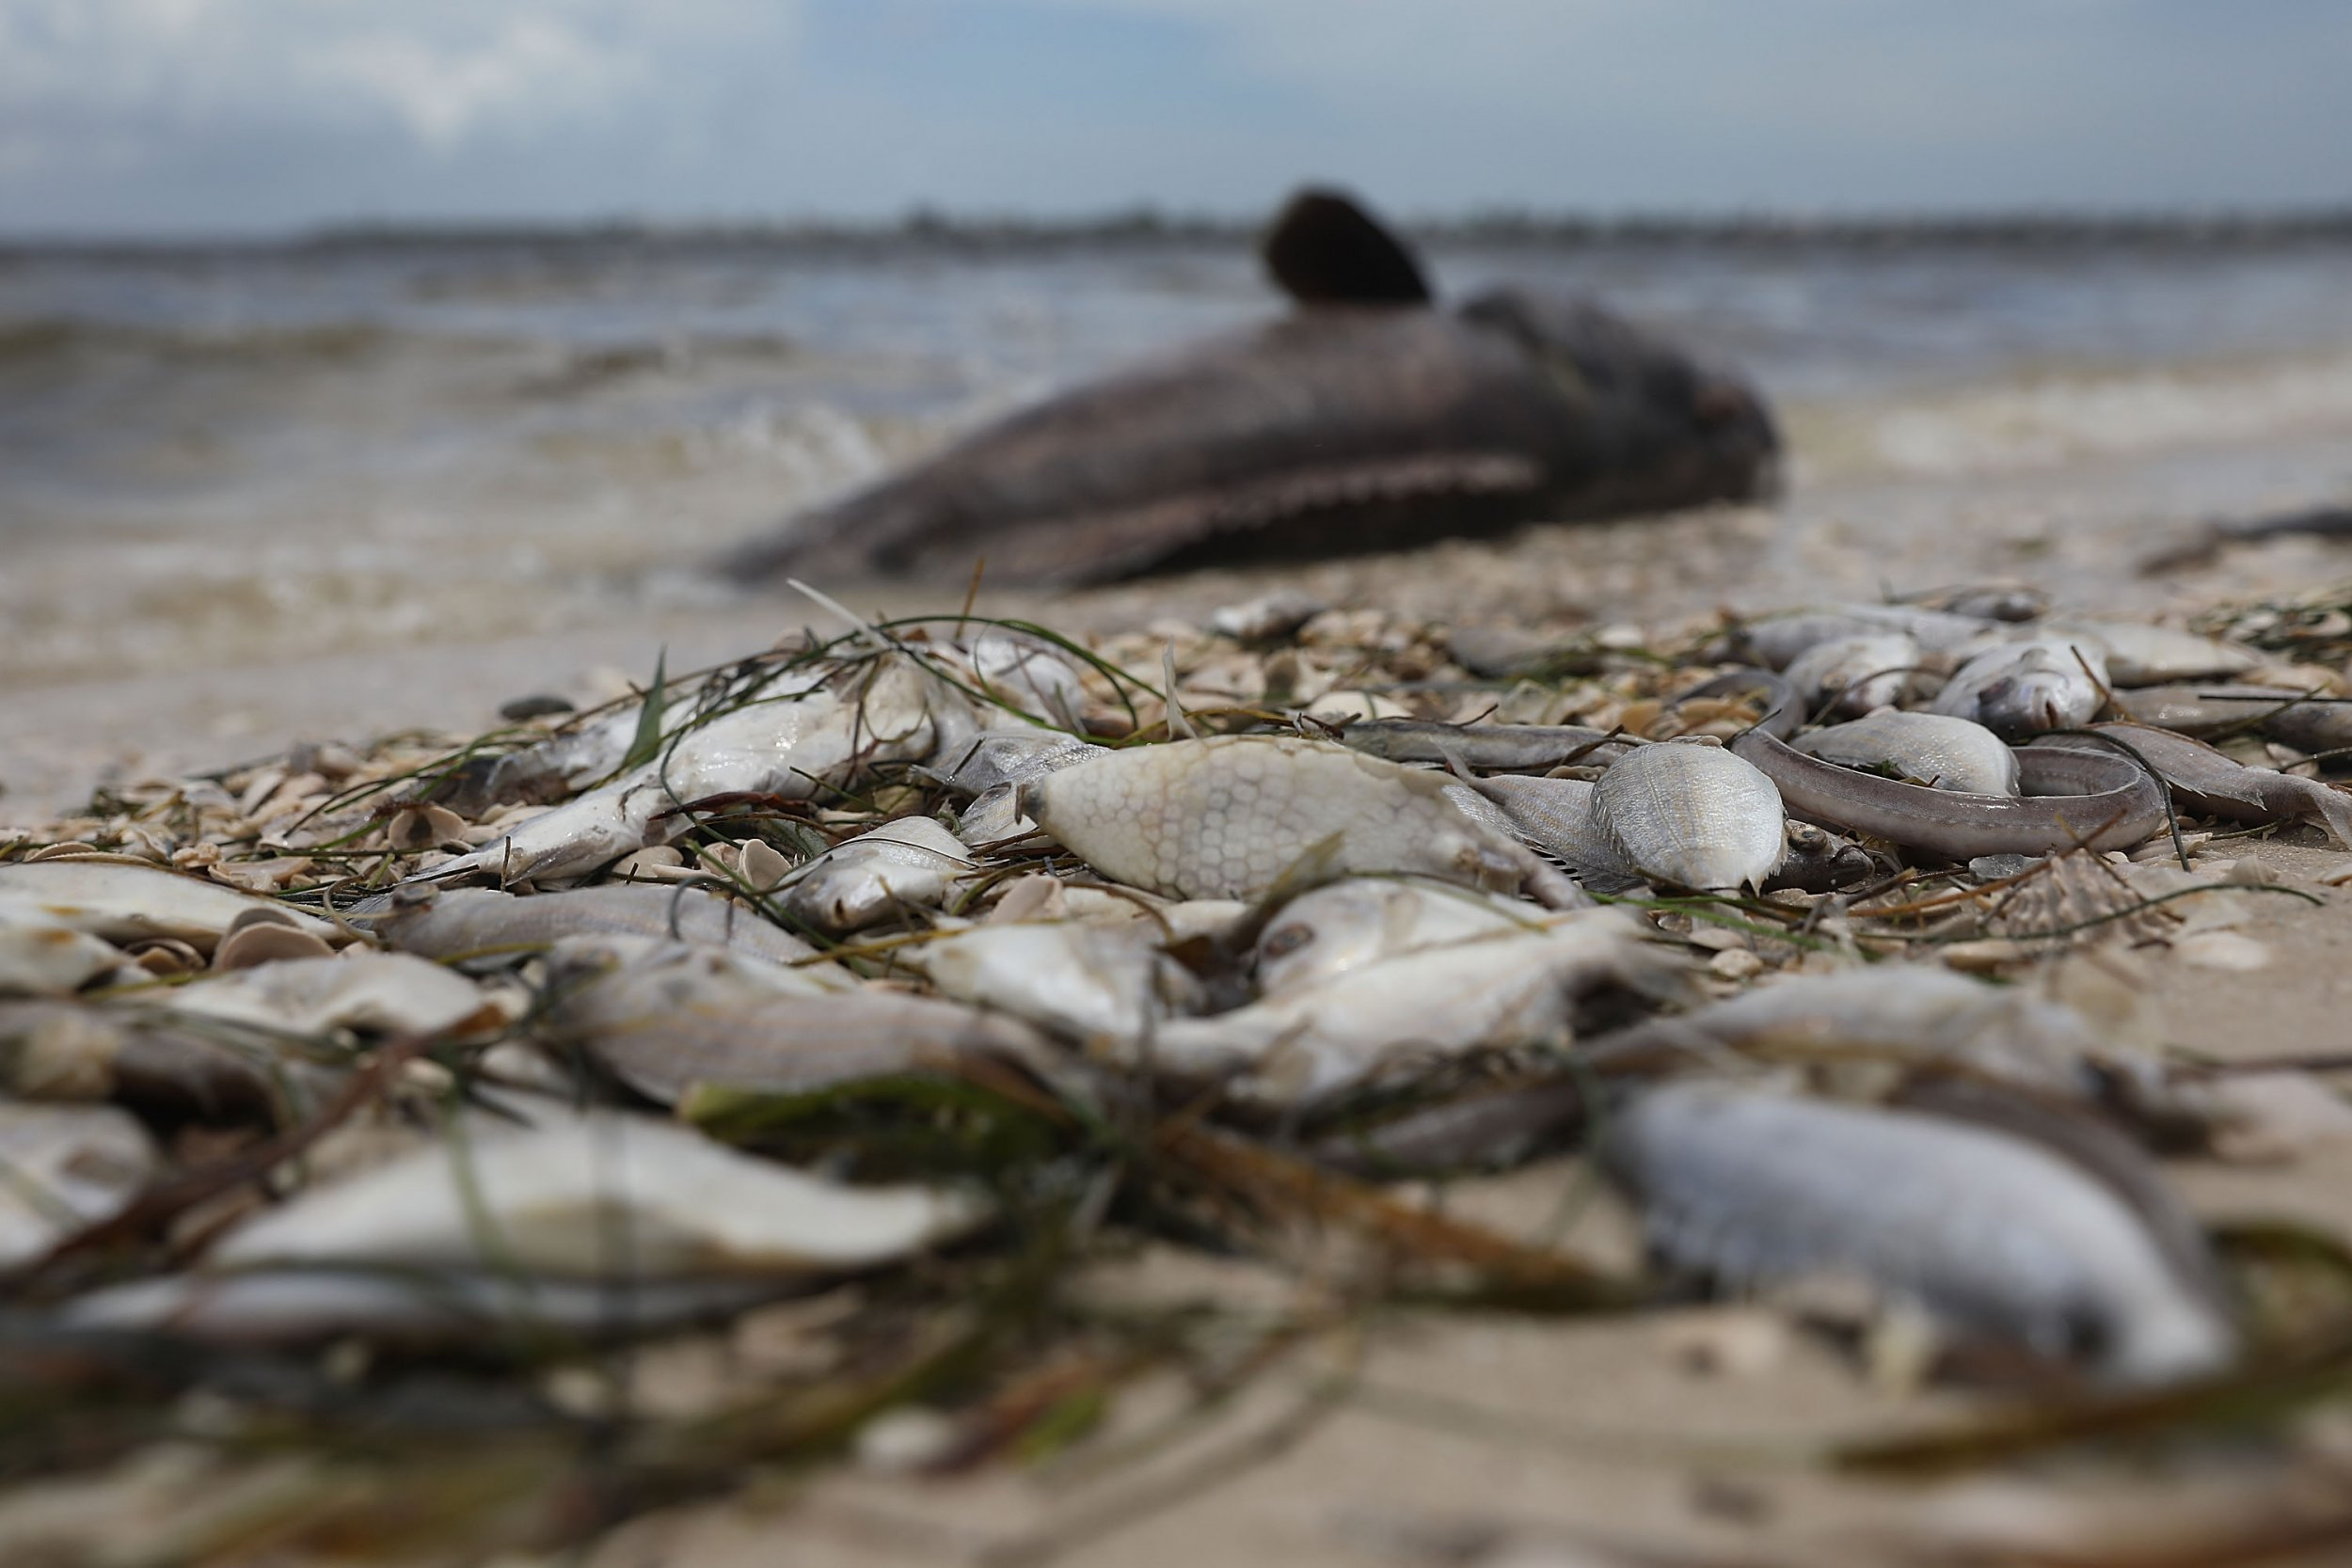 Florida Red Tide S Toxic Algae And Dead Animals Destruction Behind